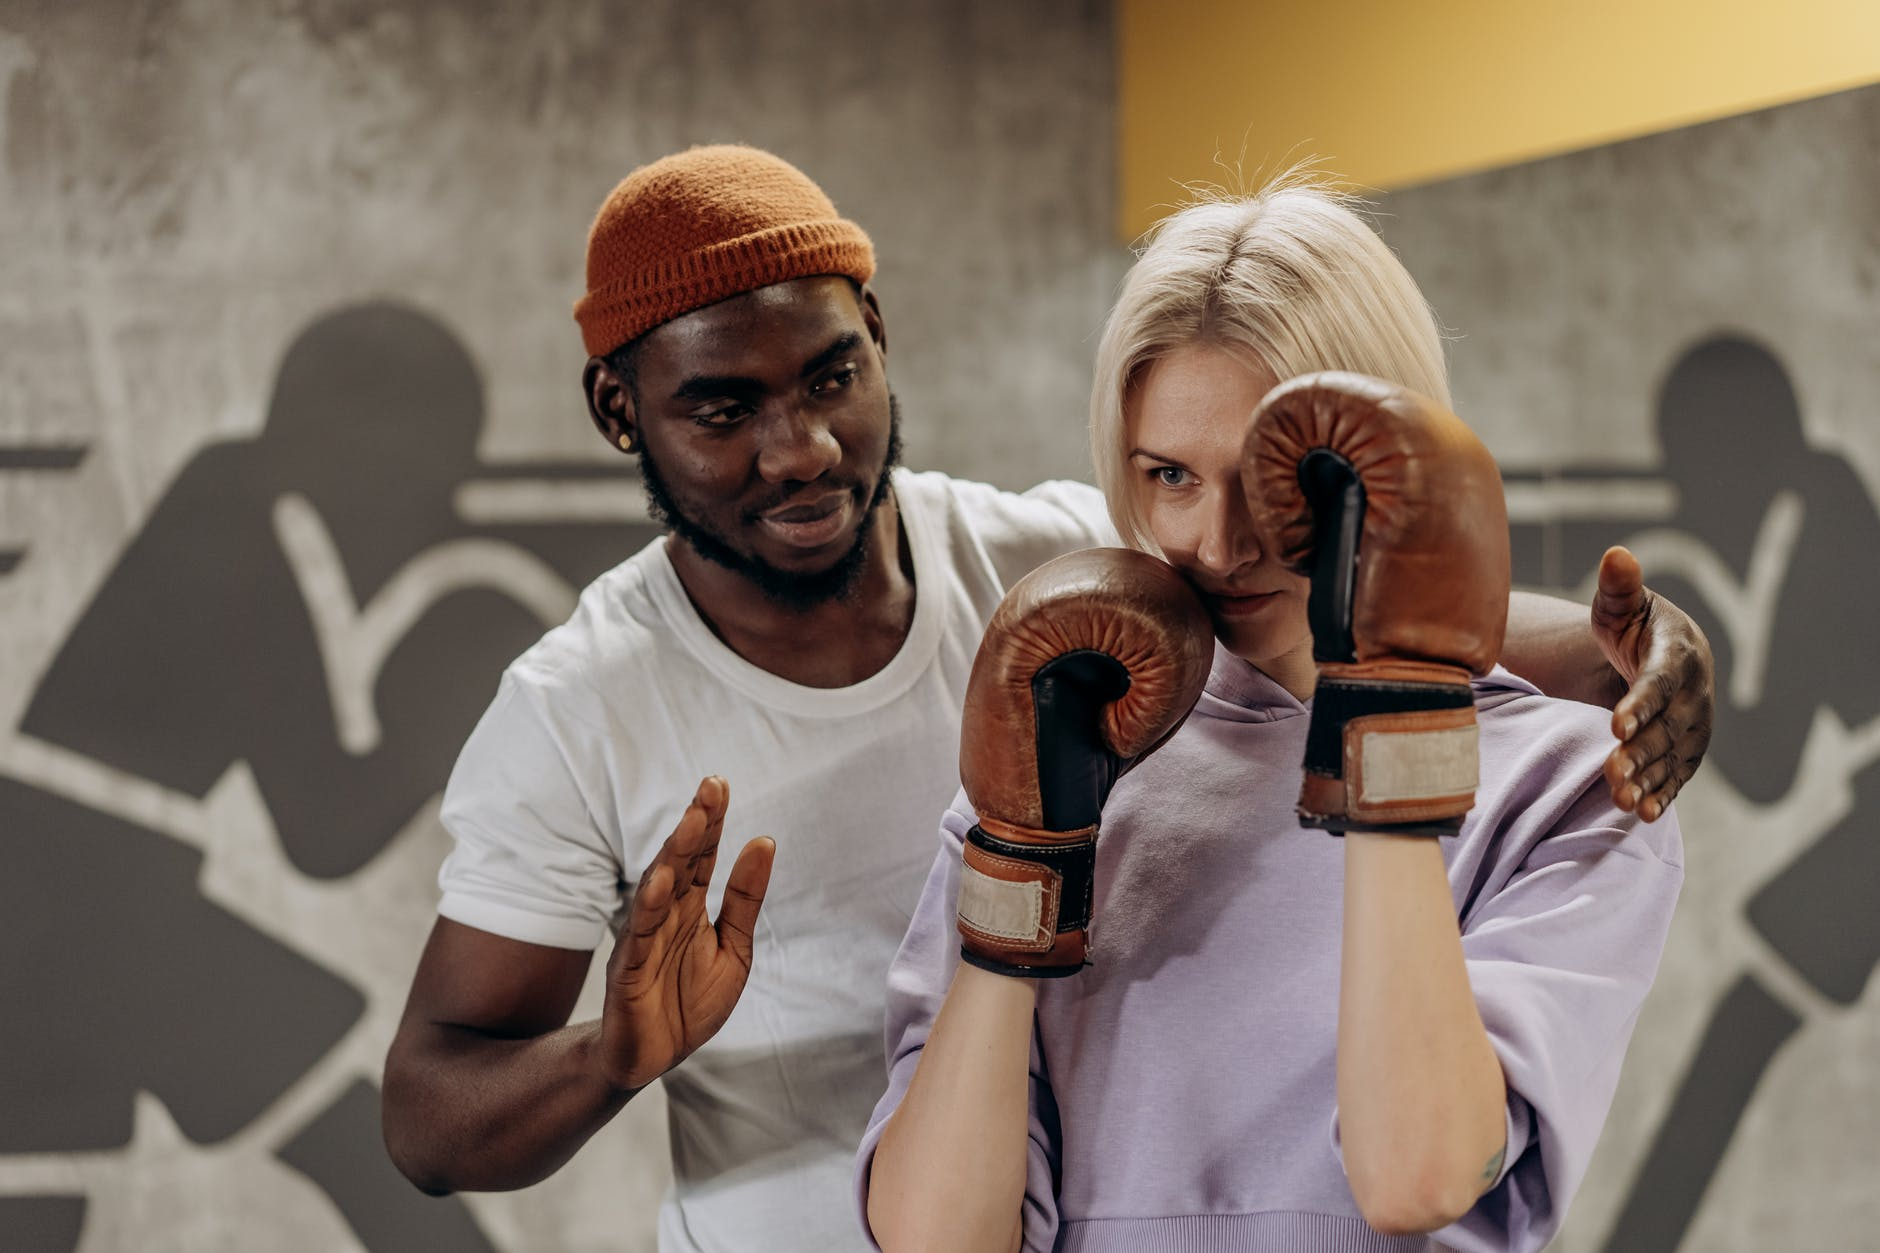 man training a woman in boxing